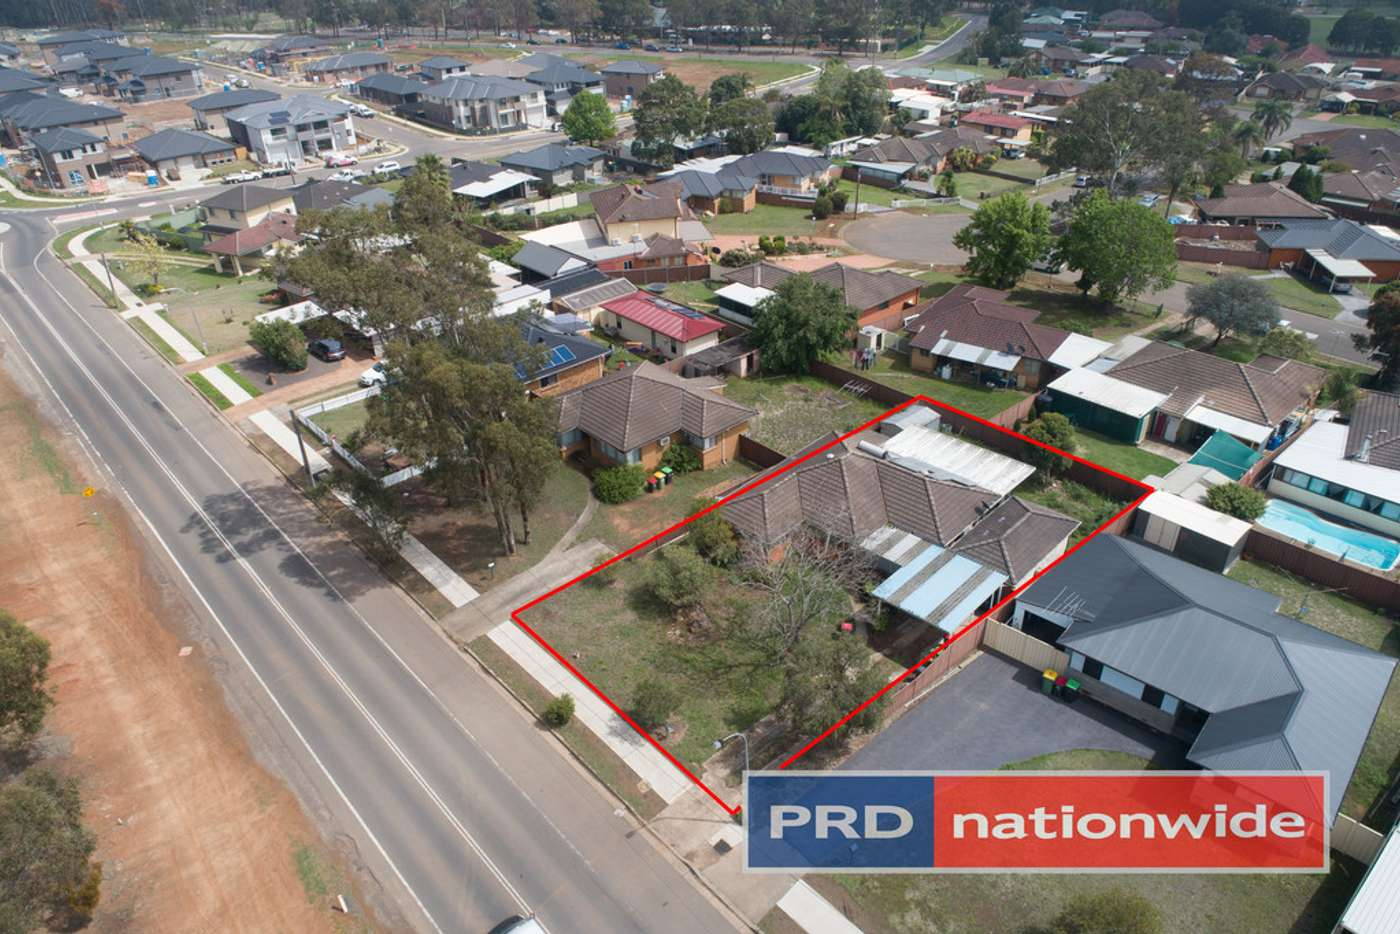 Main view of Homely house listing, 217 Victoria Street, Werrington NSW 2747